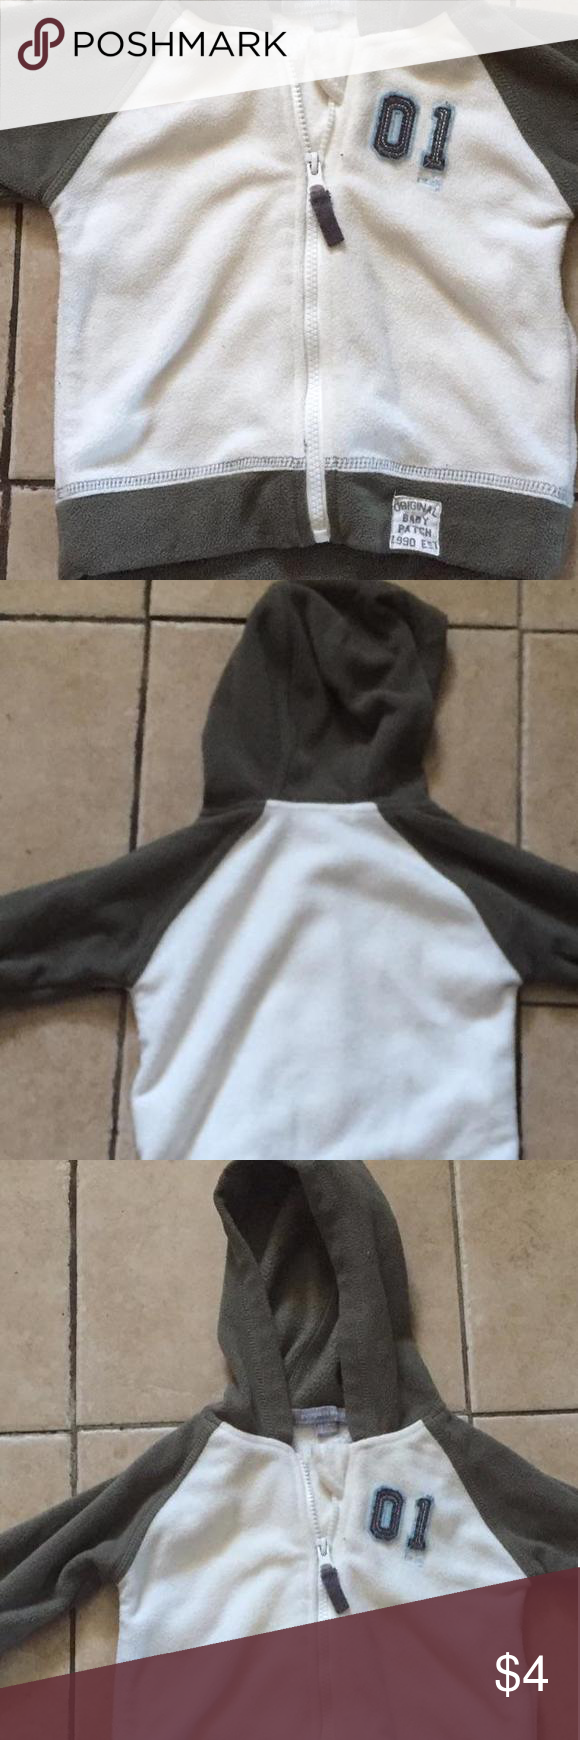 Pumpkin Patch Boys 12-18 Mos. Grey and White Hoodie In excellent condition, this Pumpkin Patch hoodie was only worn a couple of times. Safely stored in pet free smoke free home. Pumpkin Patch Shirts & Tops